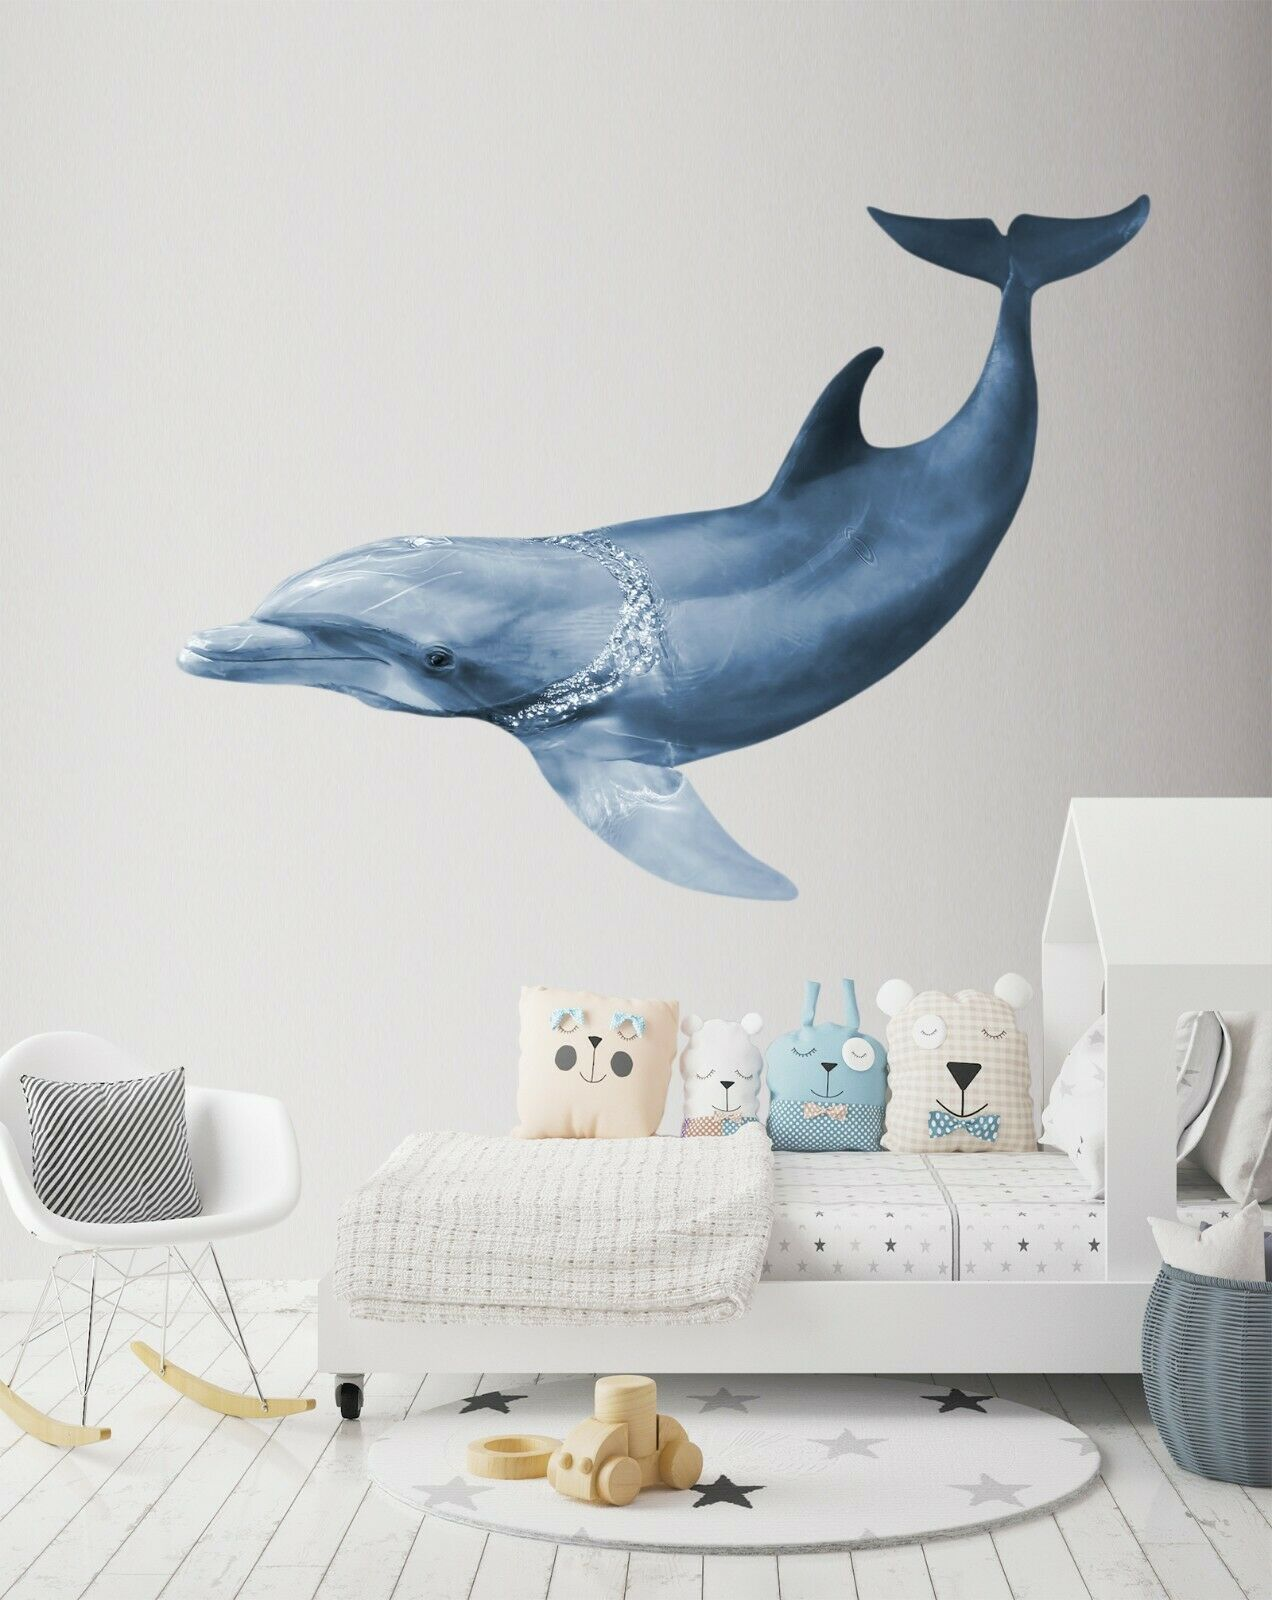 3D Dolphin Tour P49 Animal Wallpaper Mural Self-adhesive Removable Zoe